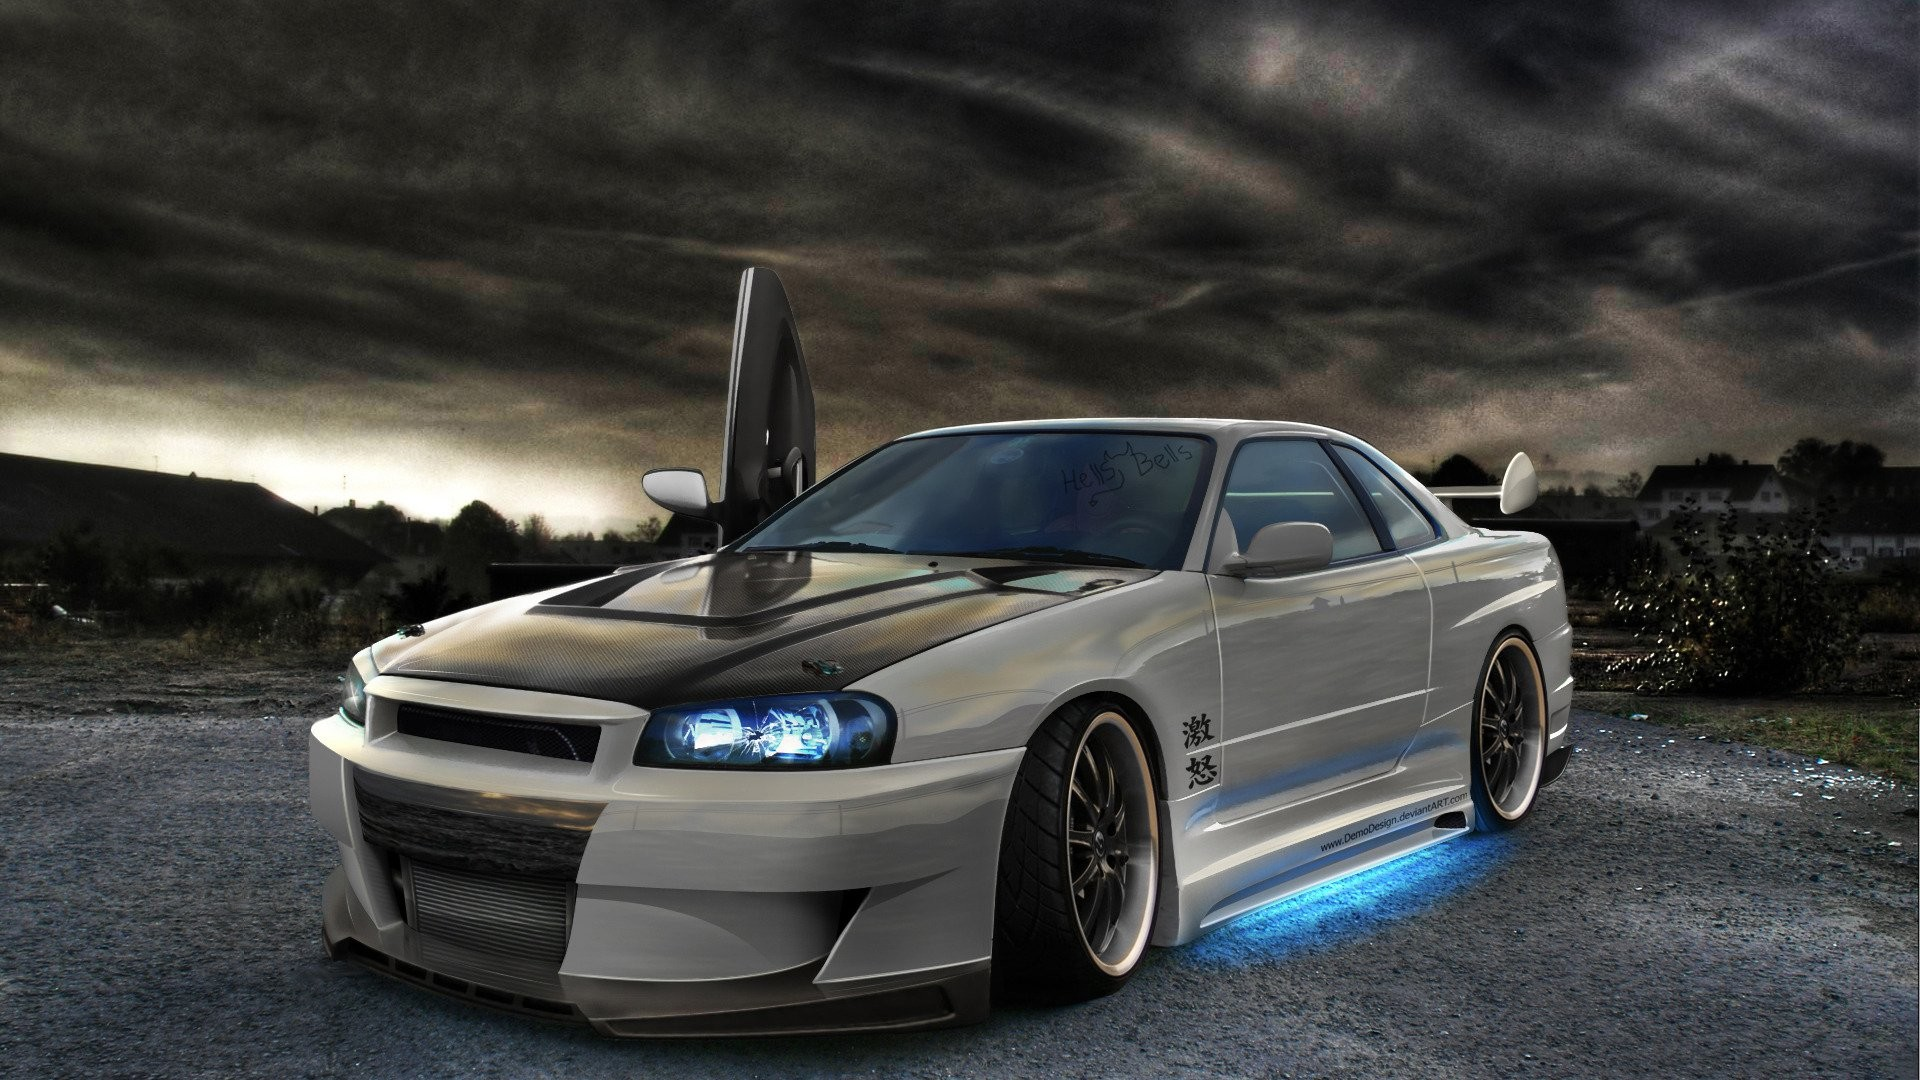 nissan skyline gtr Android Wallpapers HD Cars Pinterest